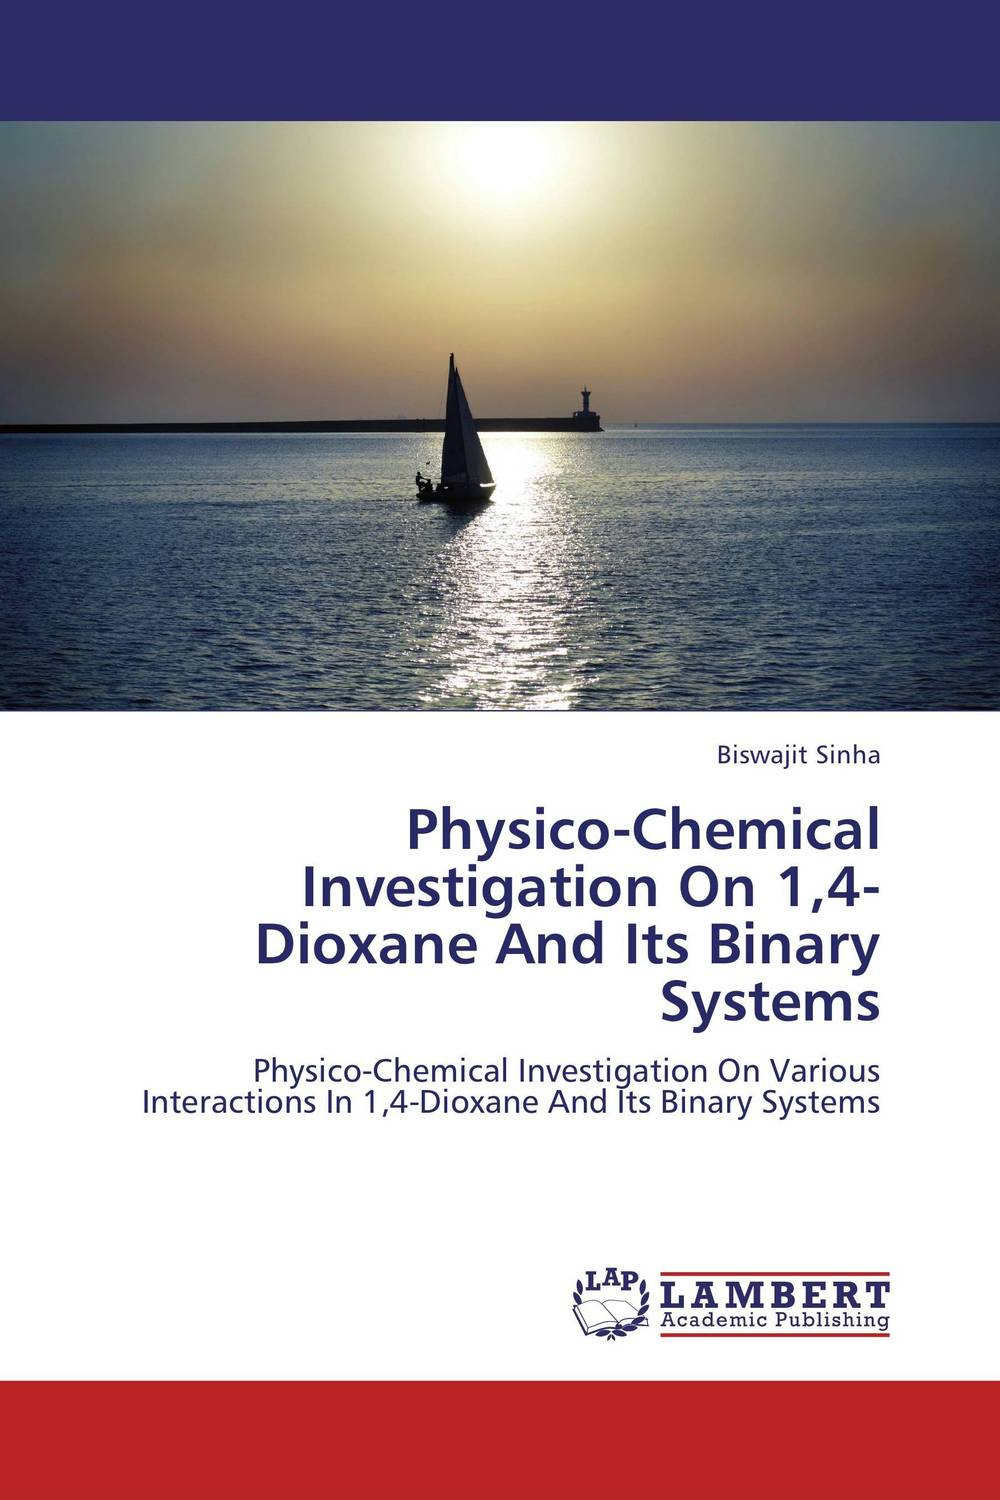 Physico-Chemical Investigation On 1,4-Dioxane And Its Binary Systems physico chemical investigation on 1 4 dioxane and its binary systems